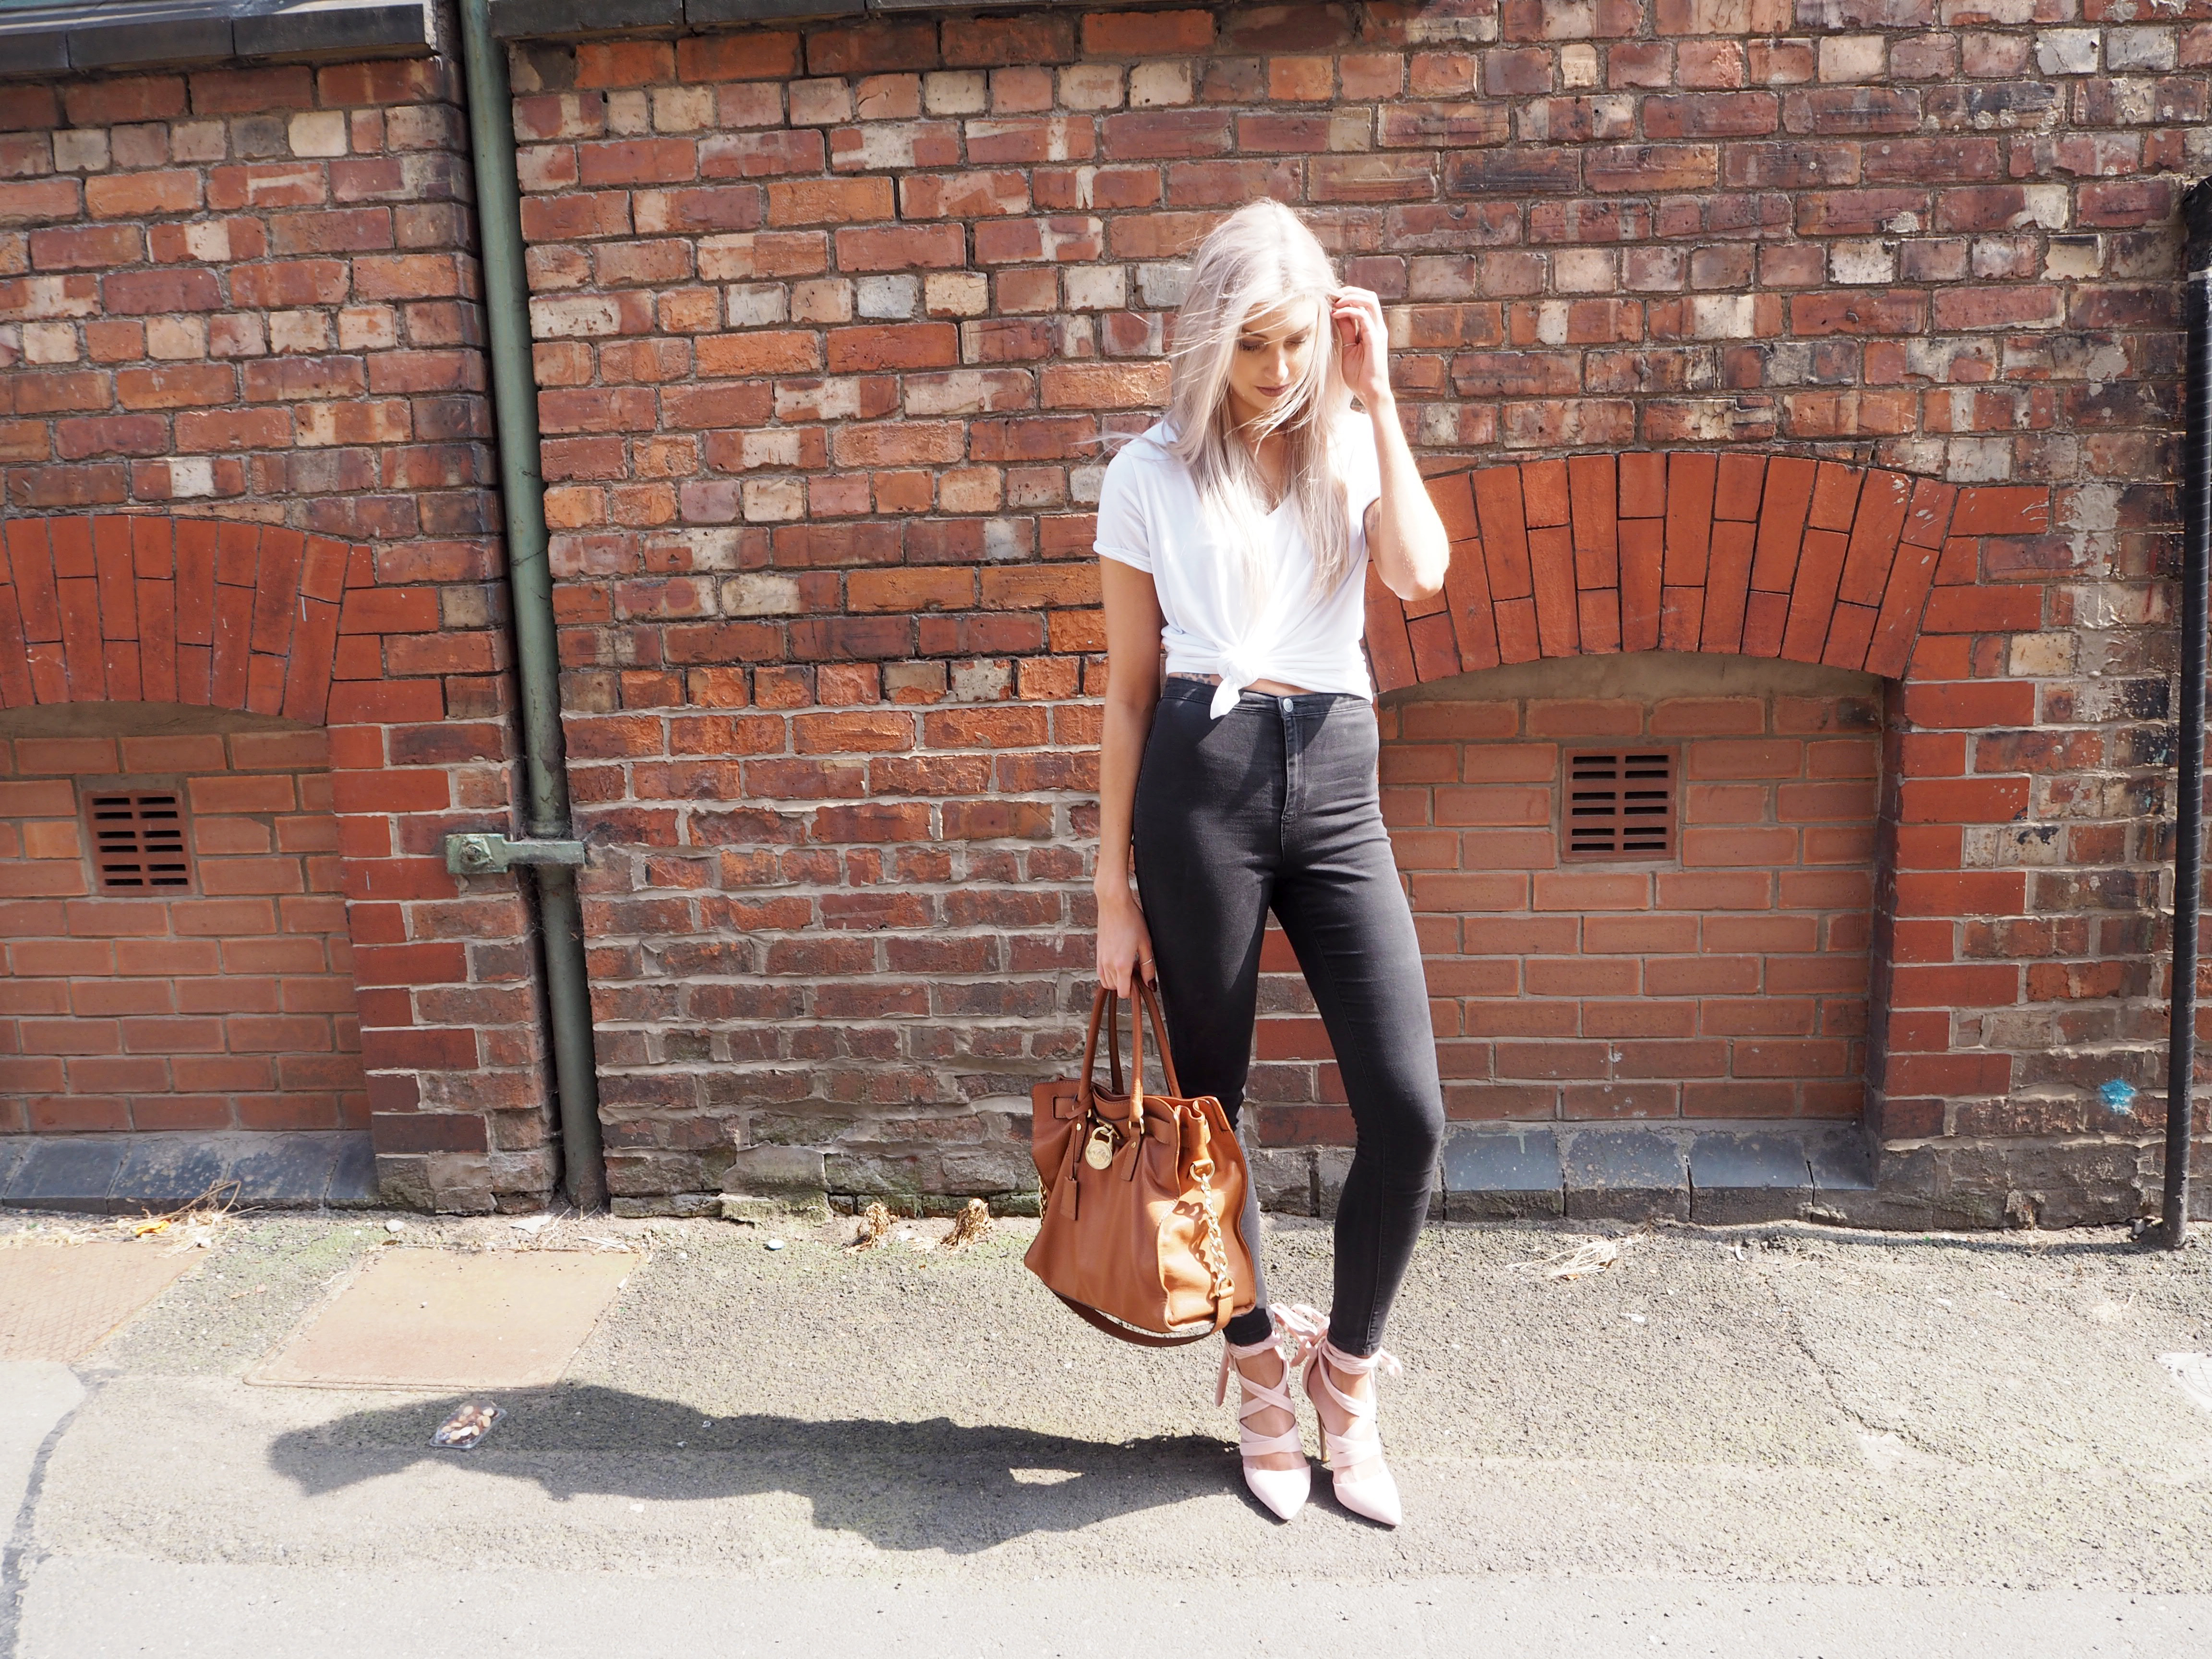 Manchester fashion lifestyle blog - outfit post - public desire, zara, primark, missguided, topshop